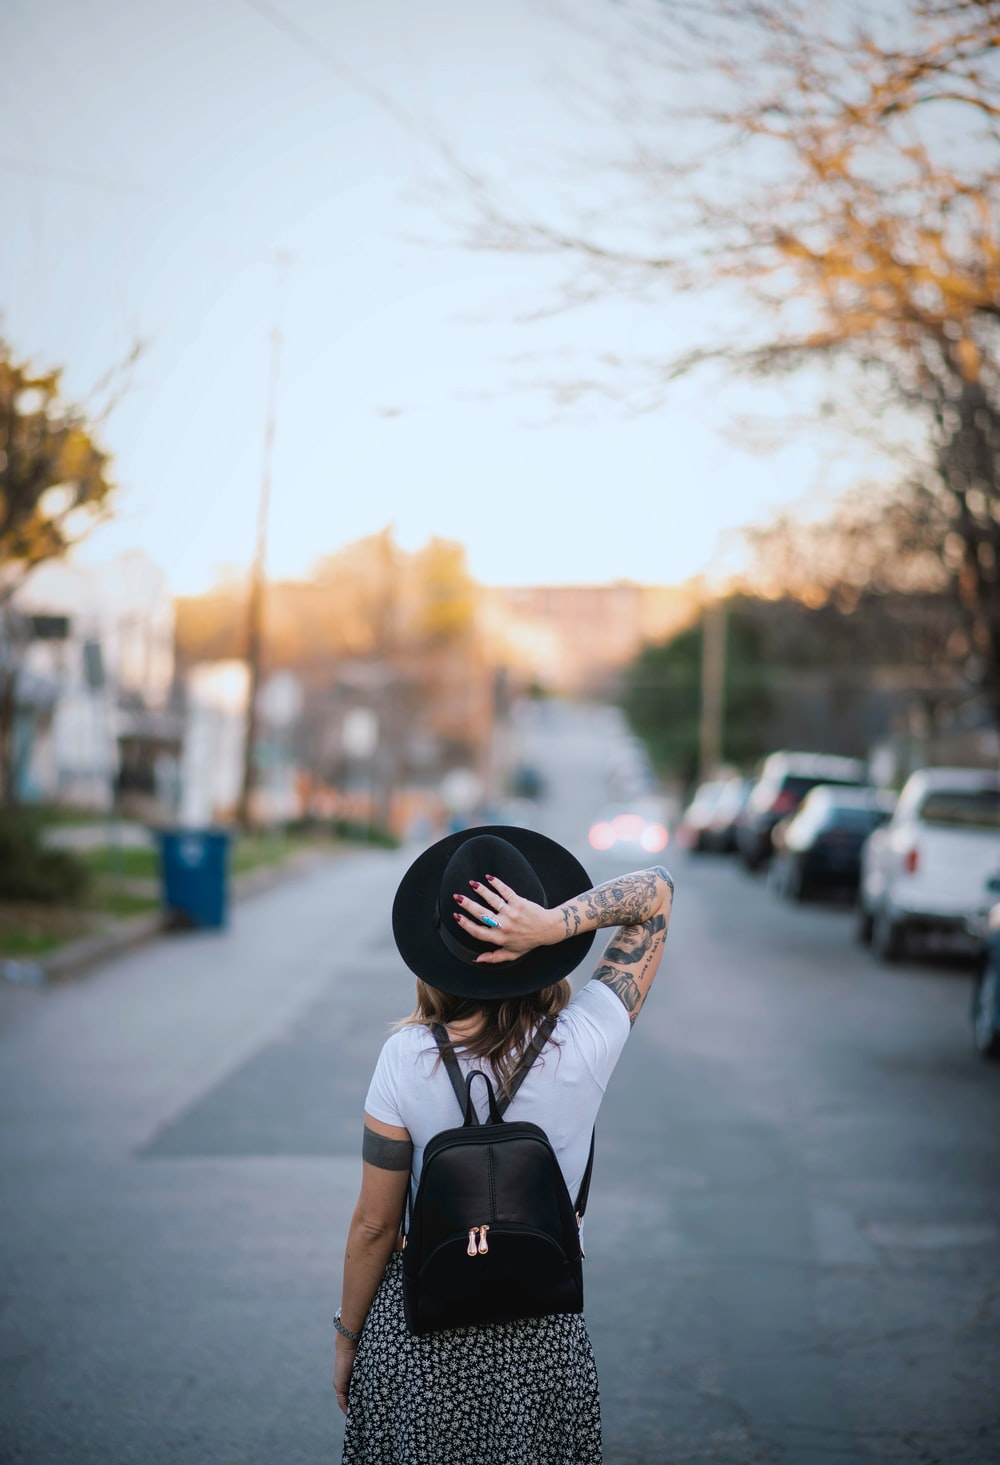 woman wearing white crew-neck t-shirt and black hat with black leather backpack standing while facing back on road during daytime